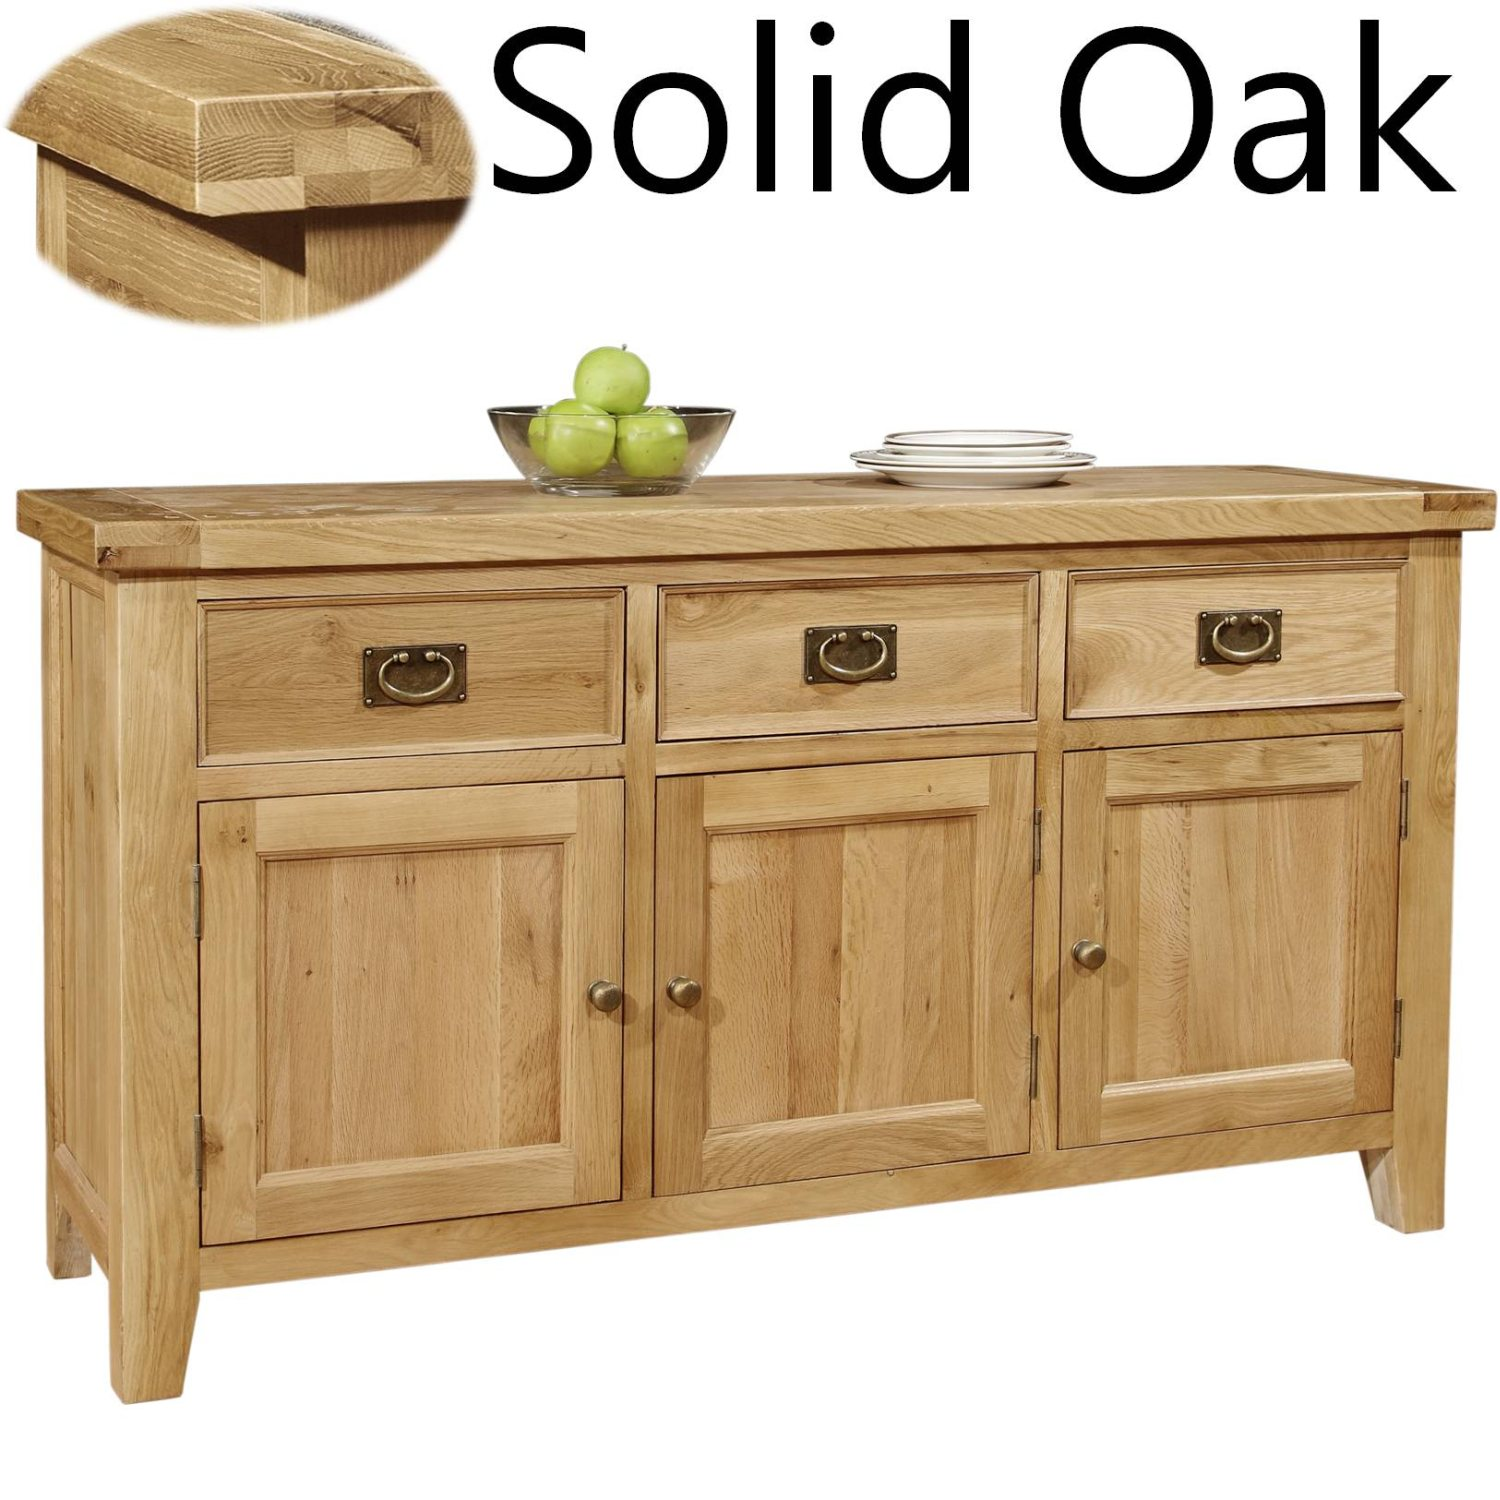 panama solid oak furniture living dining room storage